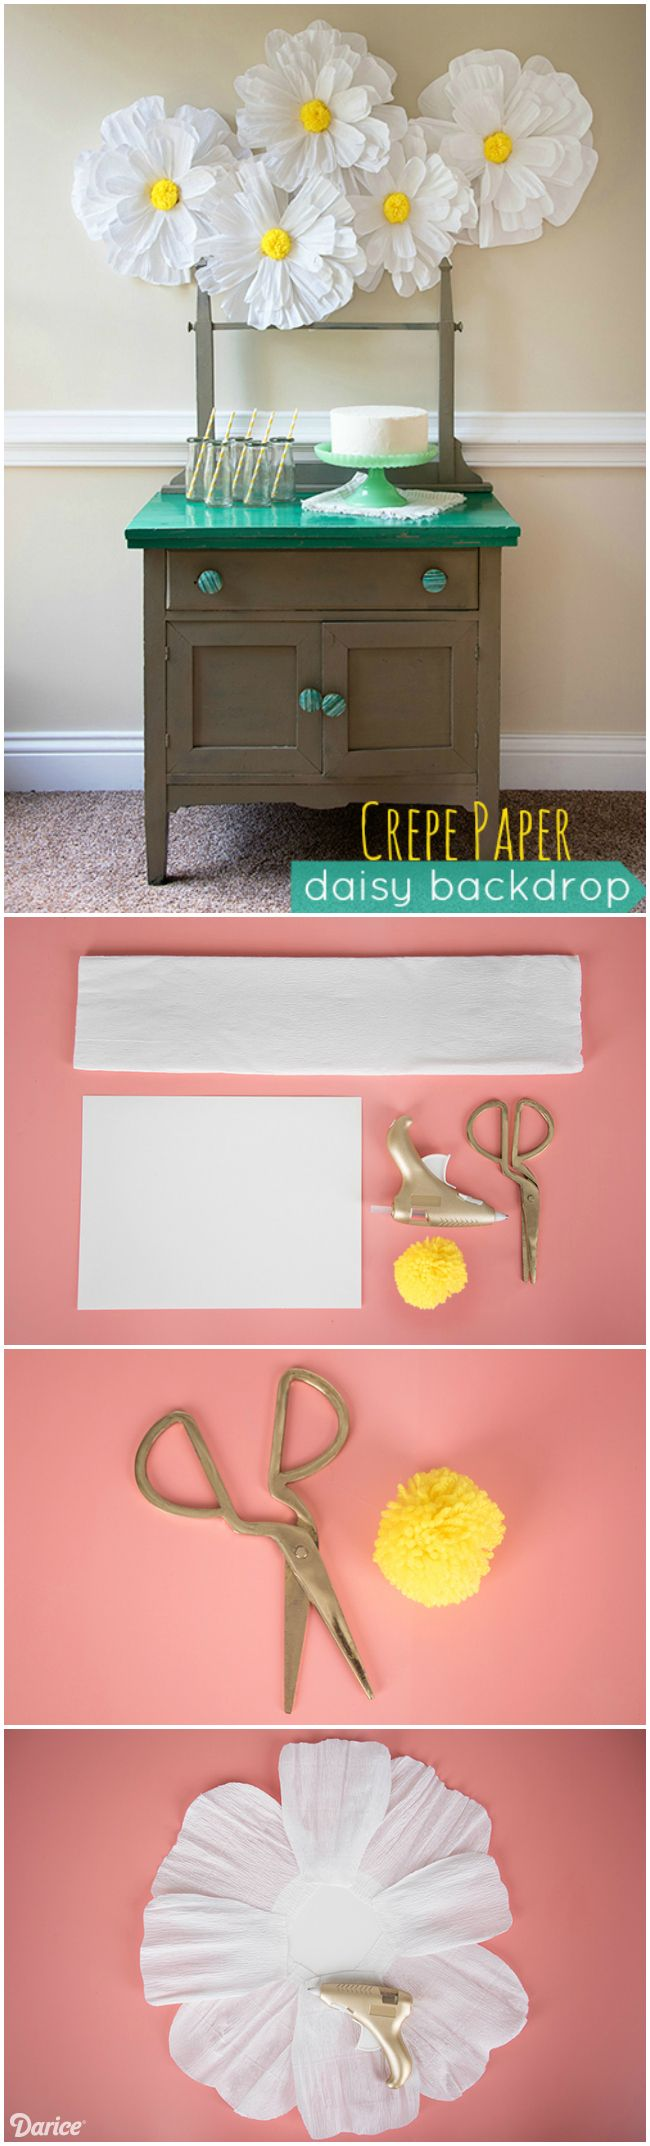 Grab your favorite color of crepe paper and some scissors and get to work. We promise this crepe paper daisy backdrop is worth the cutting time!